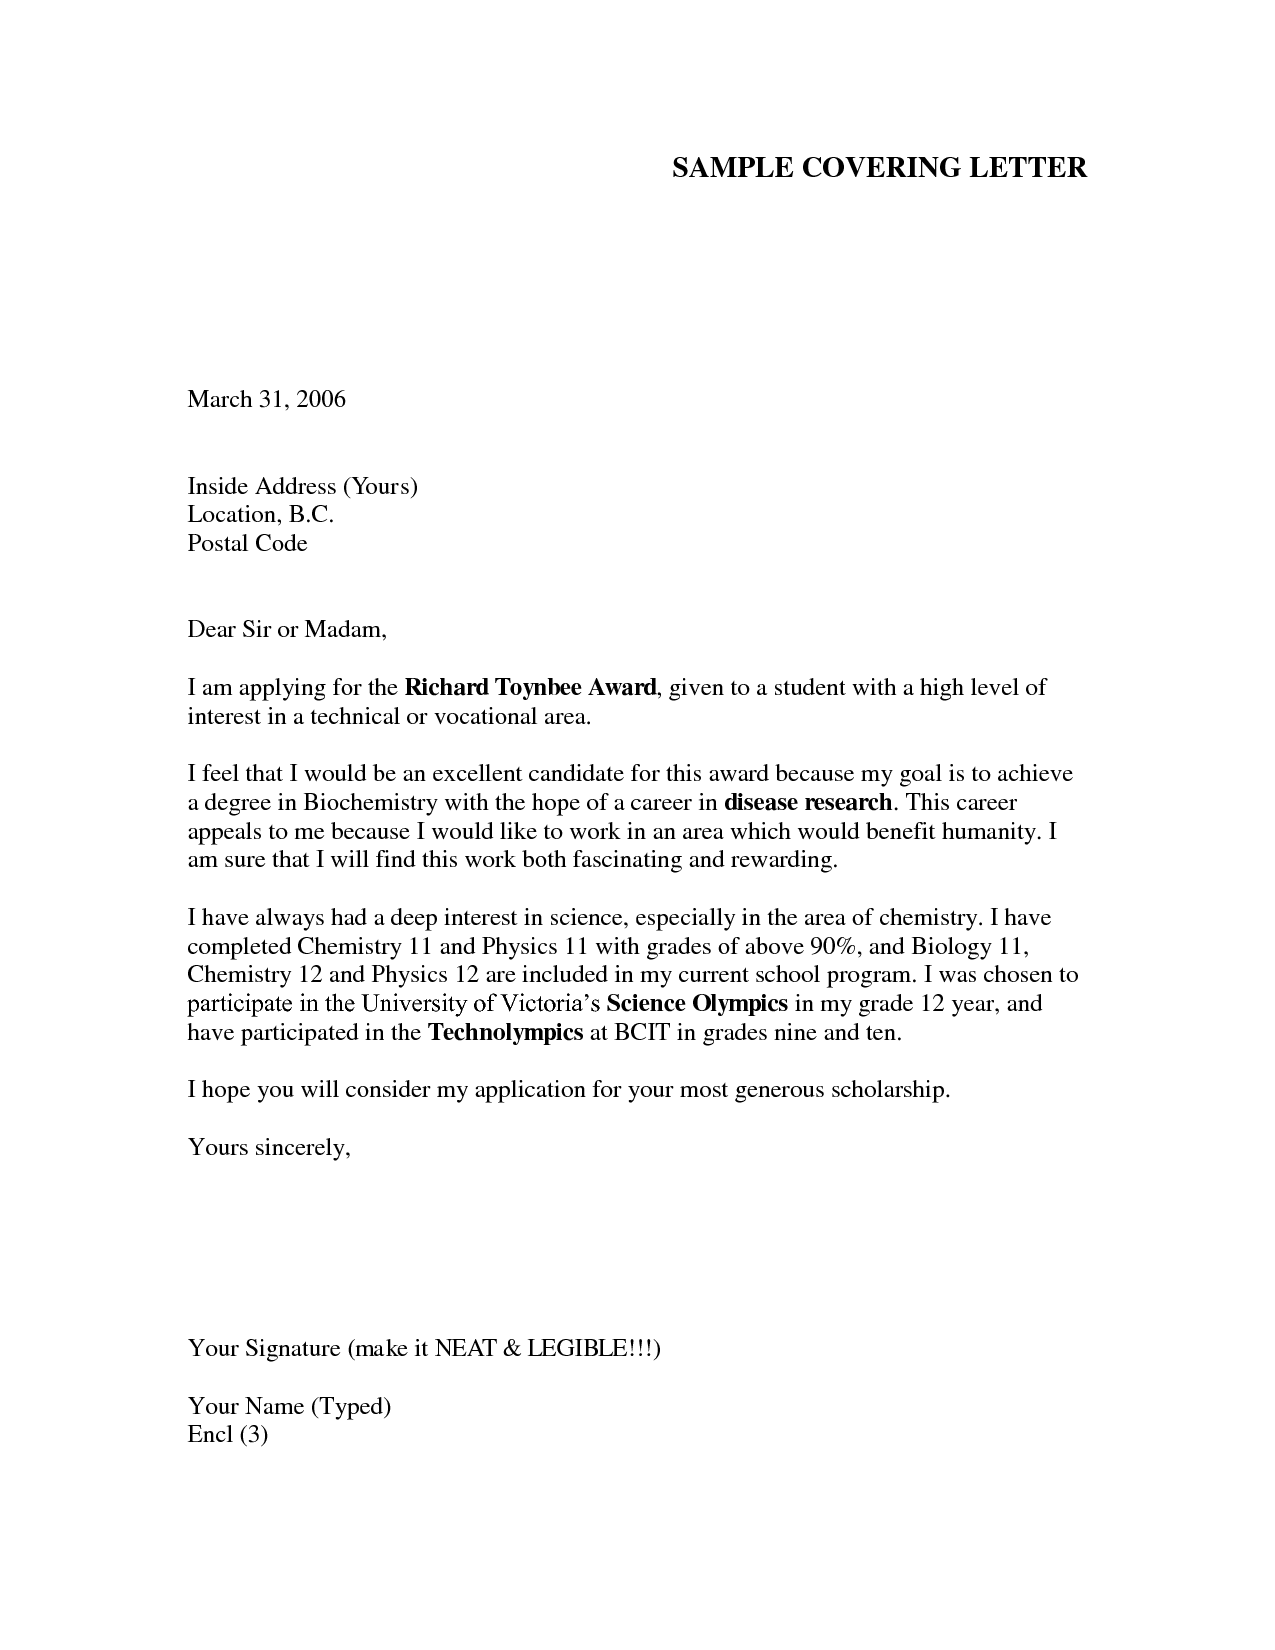 Cover Letter Example For Job Application cover letter